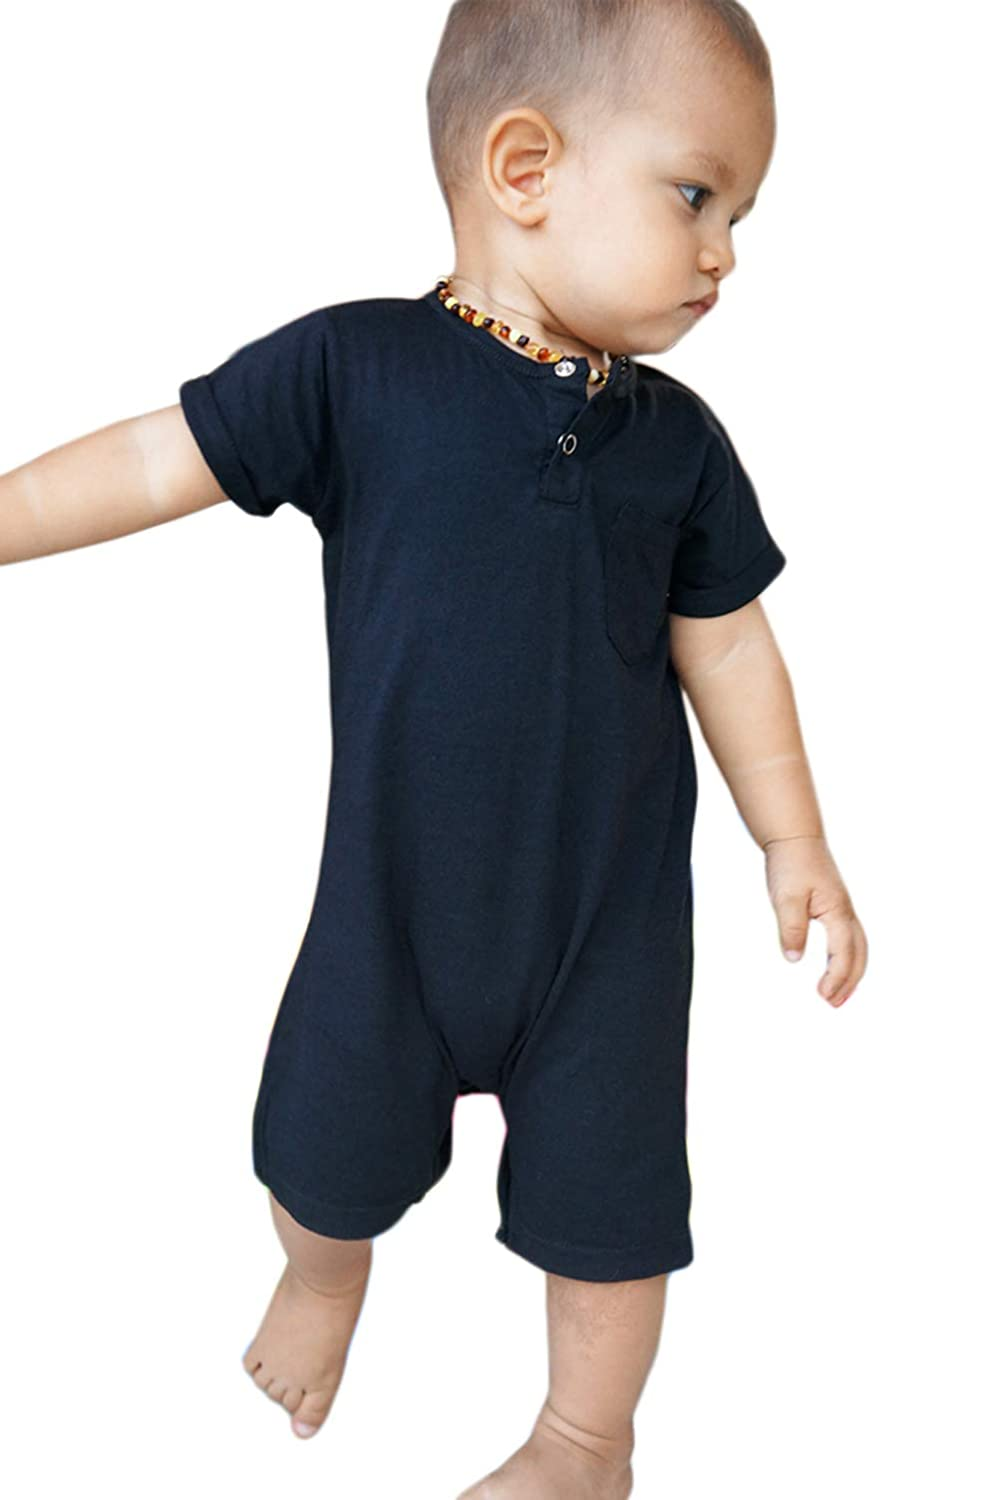 Hey Hendrix Apparel Bamboo Baby Romper Black from Organically Grown Bamboo